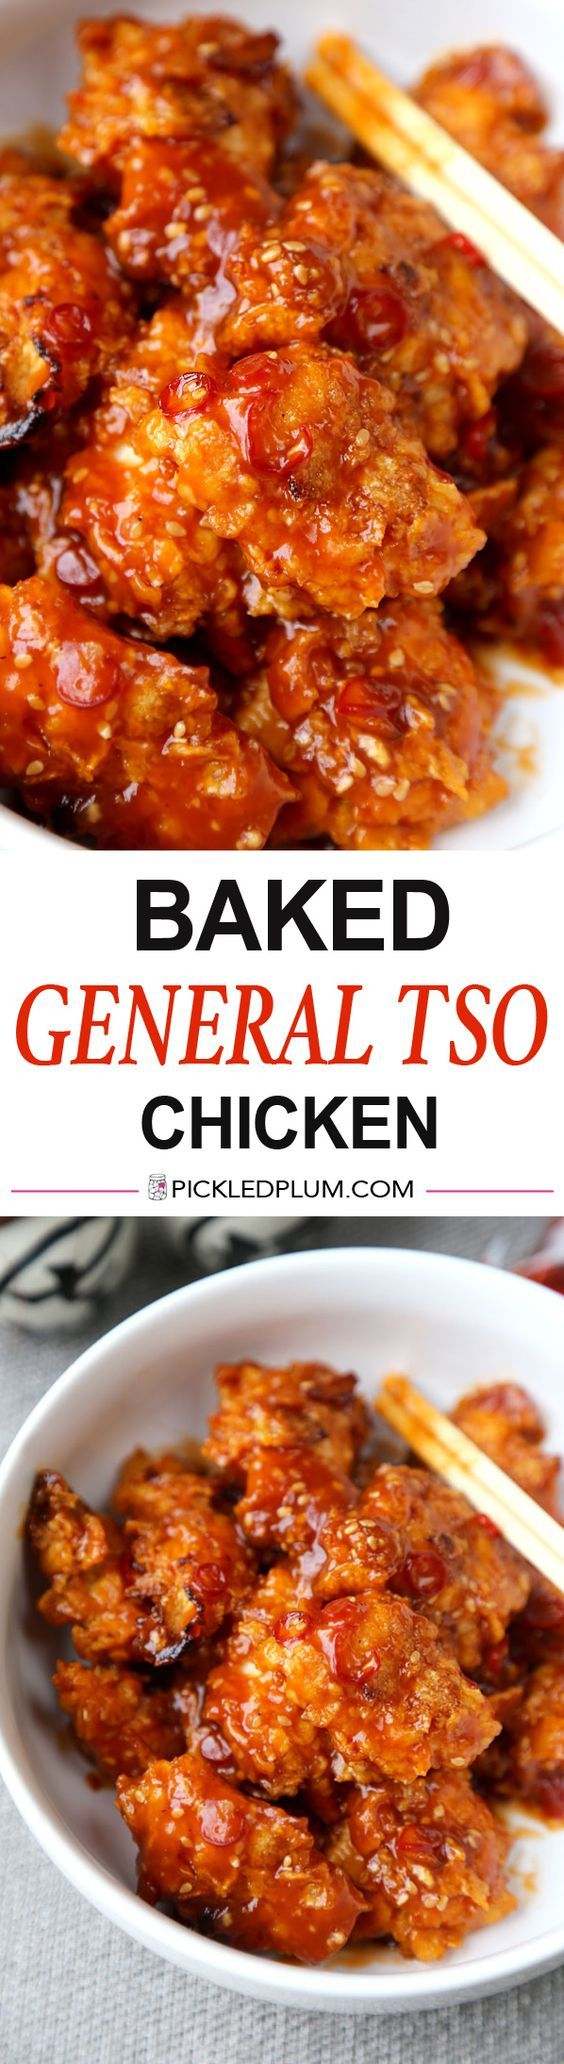 Baked General Tso Chicken Recipe - Crushed Cornflakes imitate fried chicken so well you'll forget you are eating healthy! http://www.pickledplum.com/baked-general-tso-chicken-recipe/: